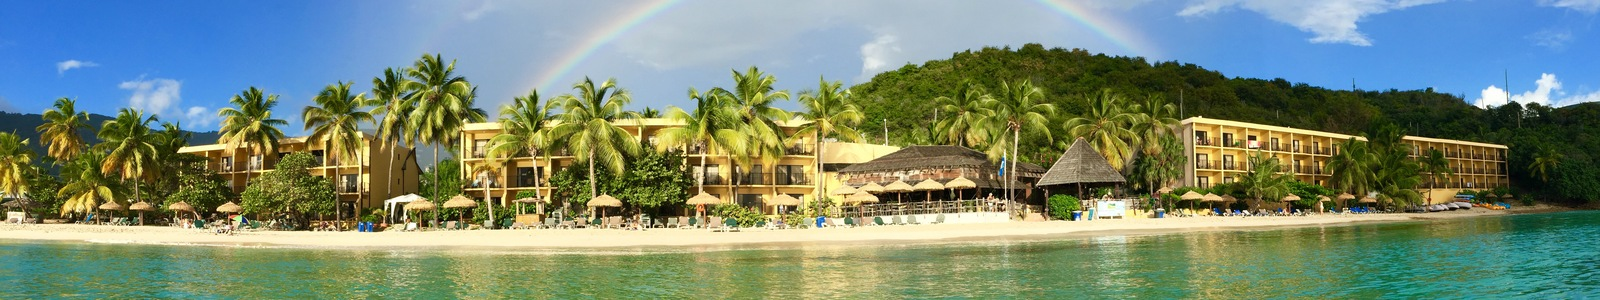 Emerald Beach Resort In St Thomas View From The Water